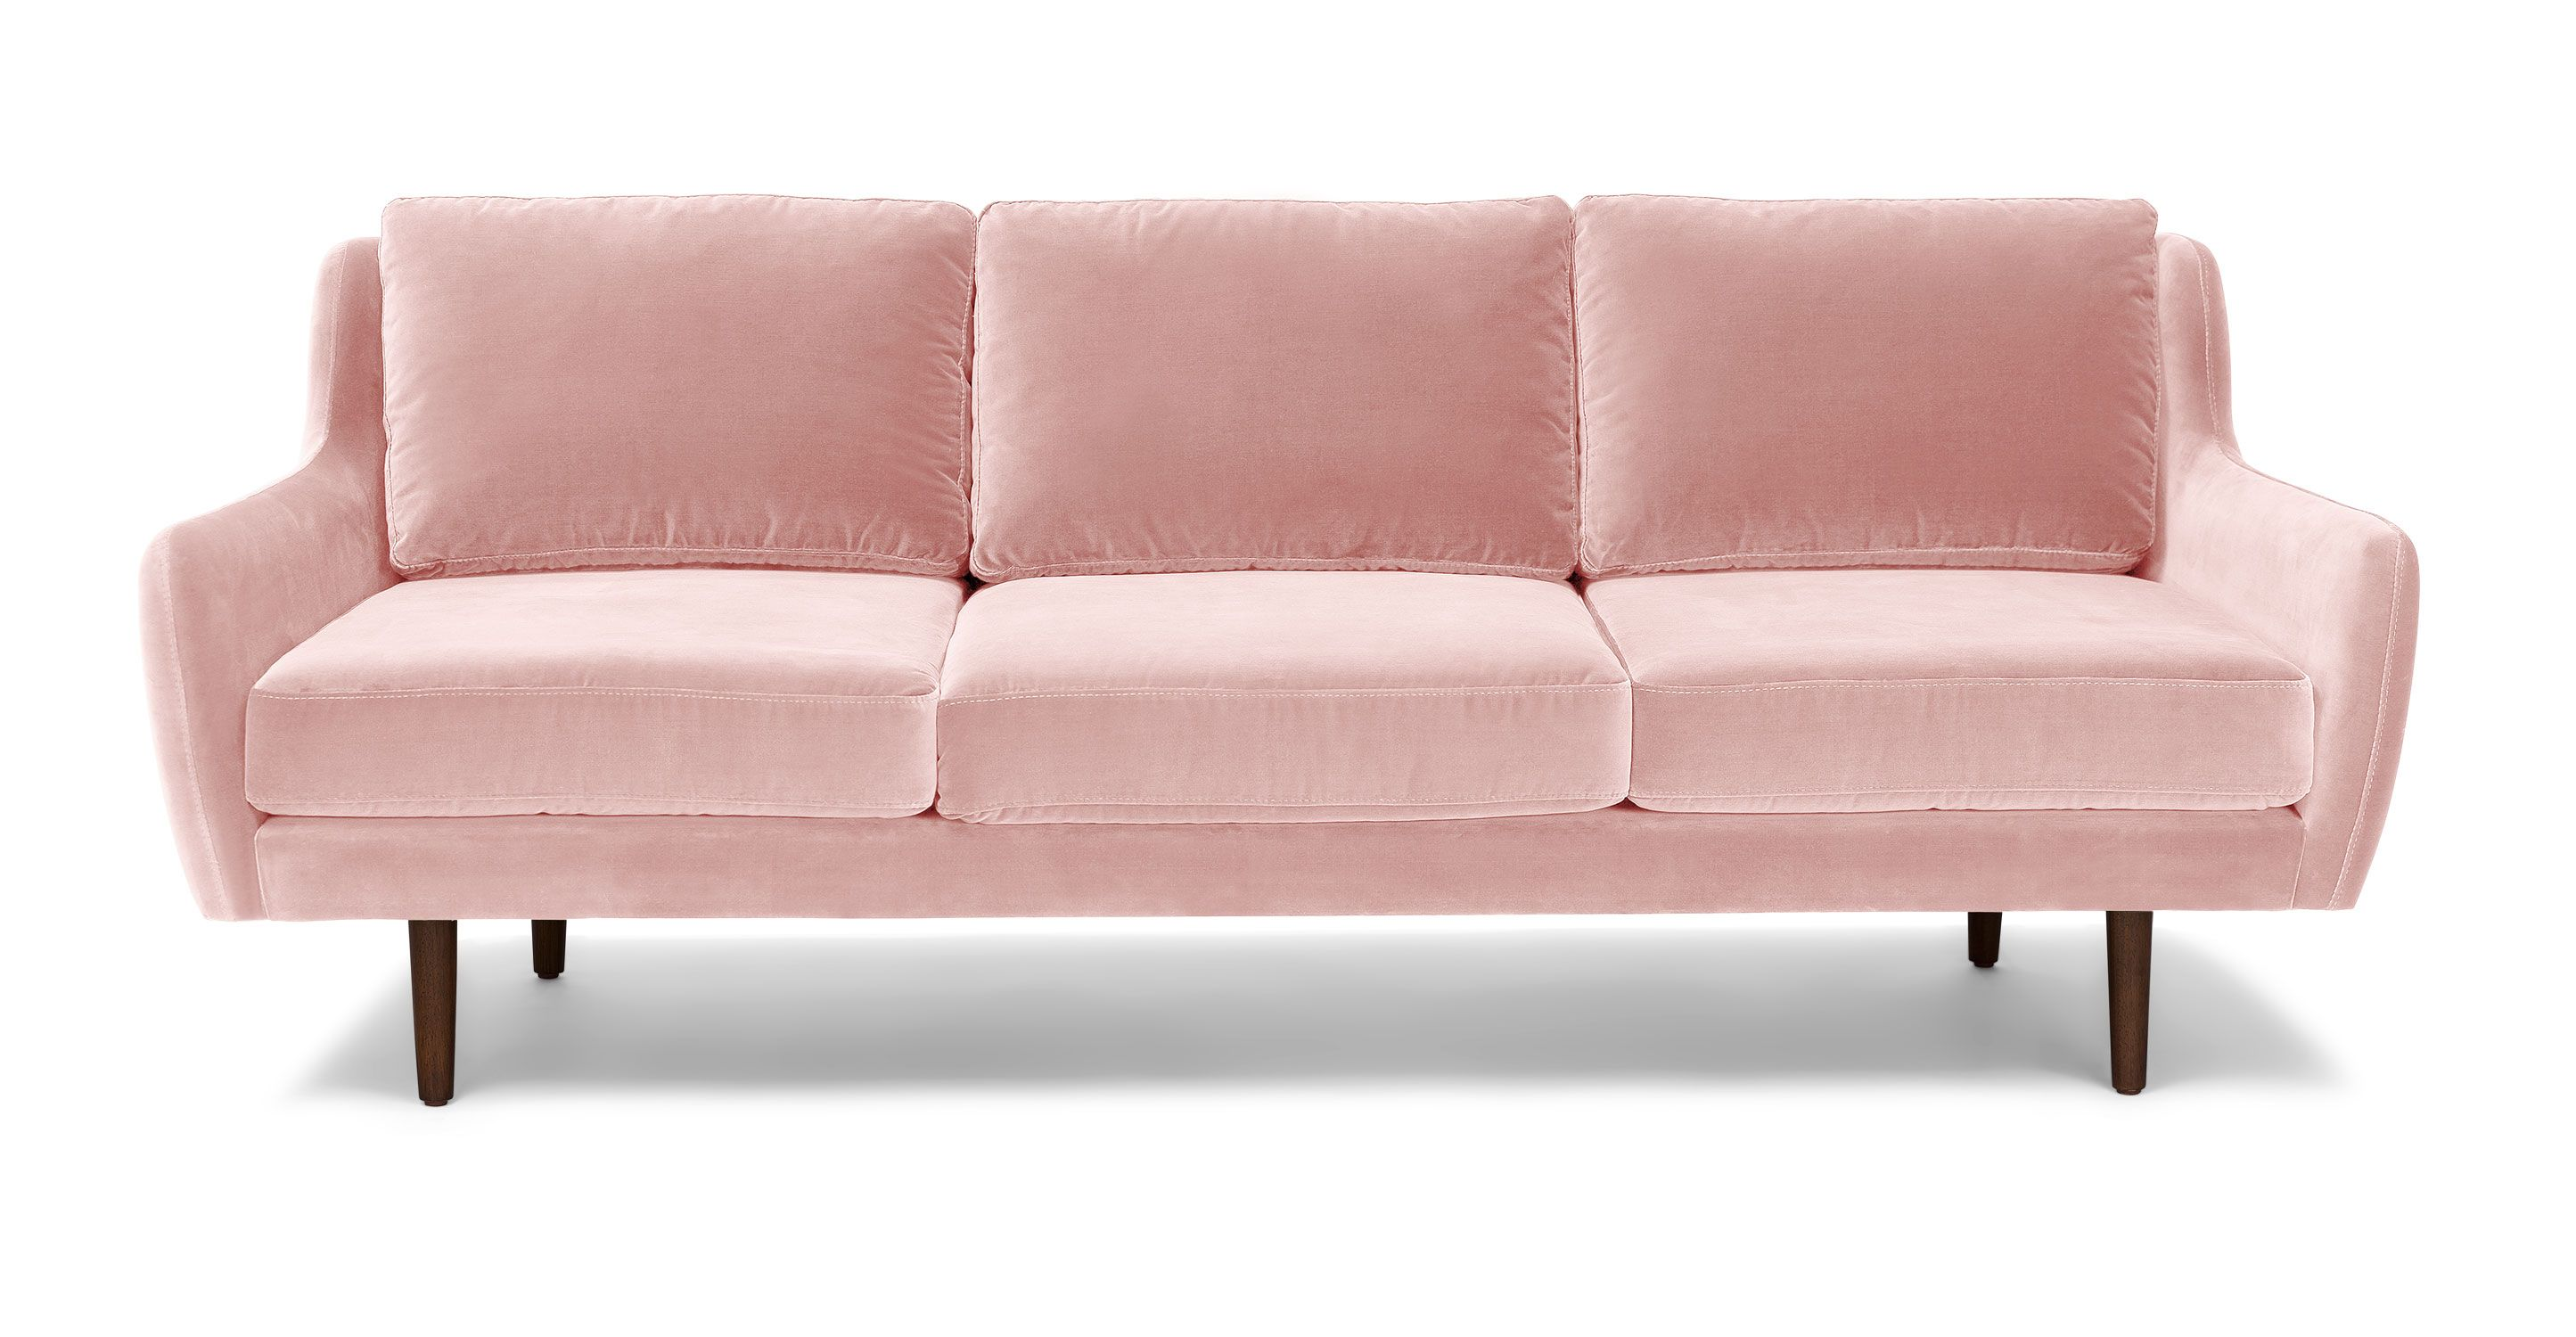 Pink Velvet Sofa Walnut Wood Legs